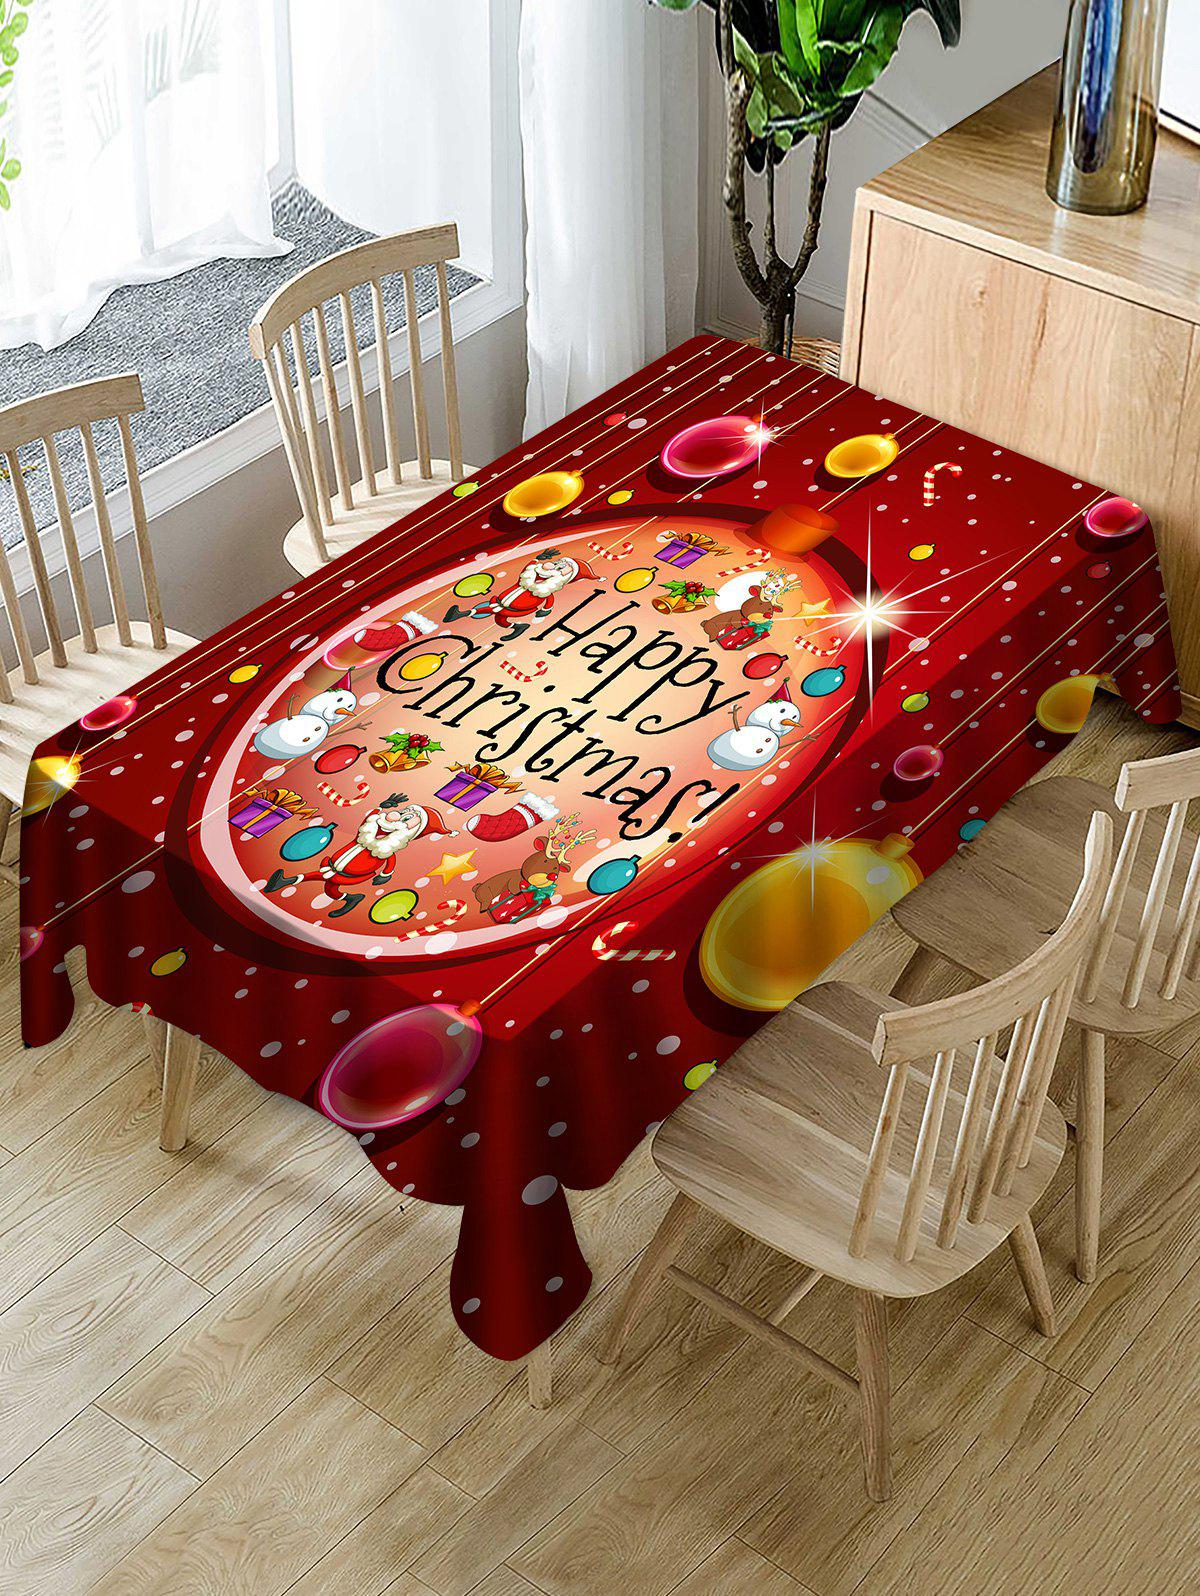 Affordable Happy Christmas Print Fabric Waterproof Tablecloth